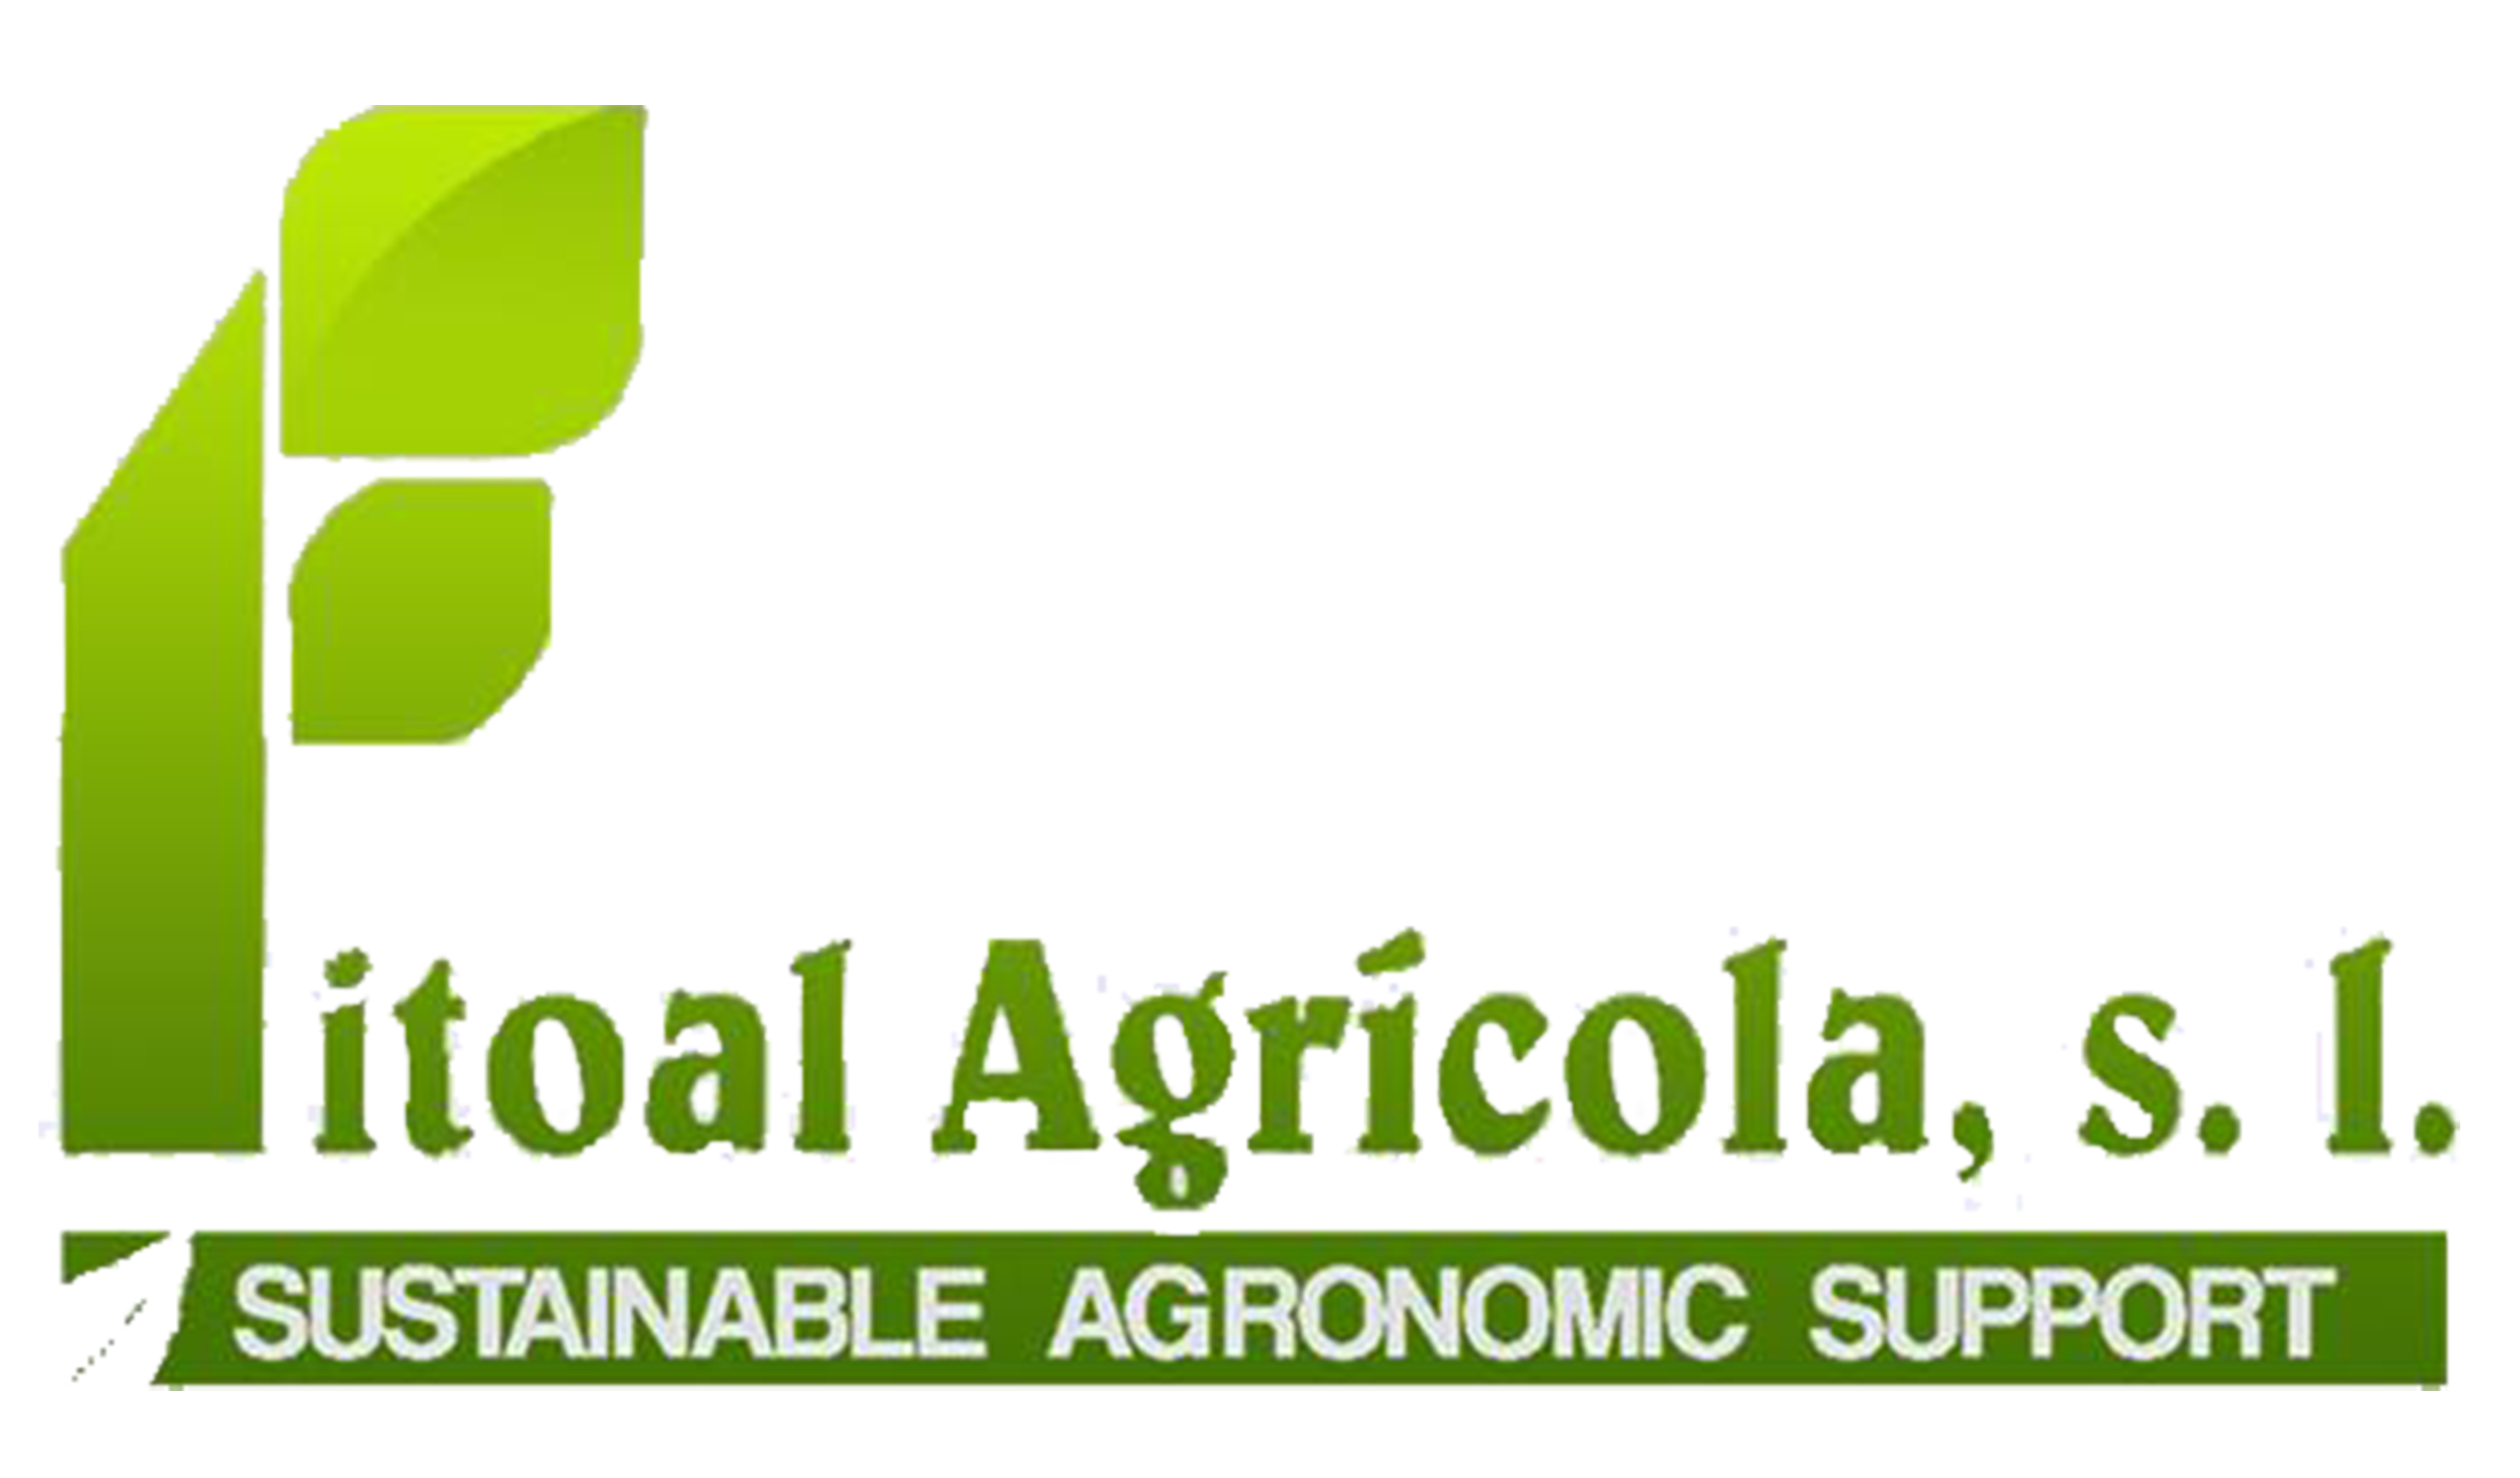 FITOAL AGRICOLA SL